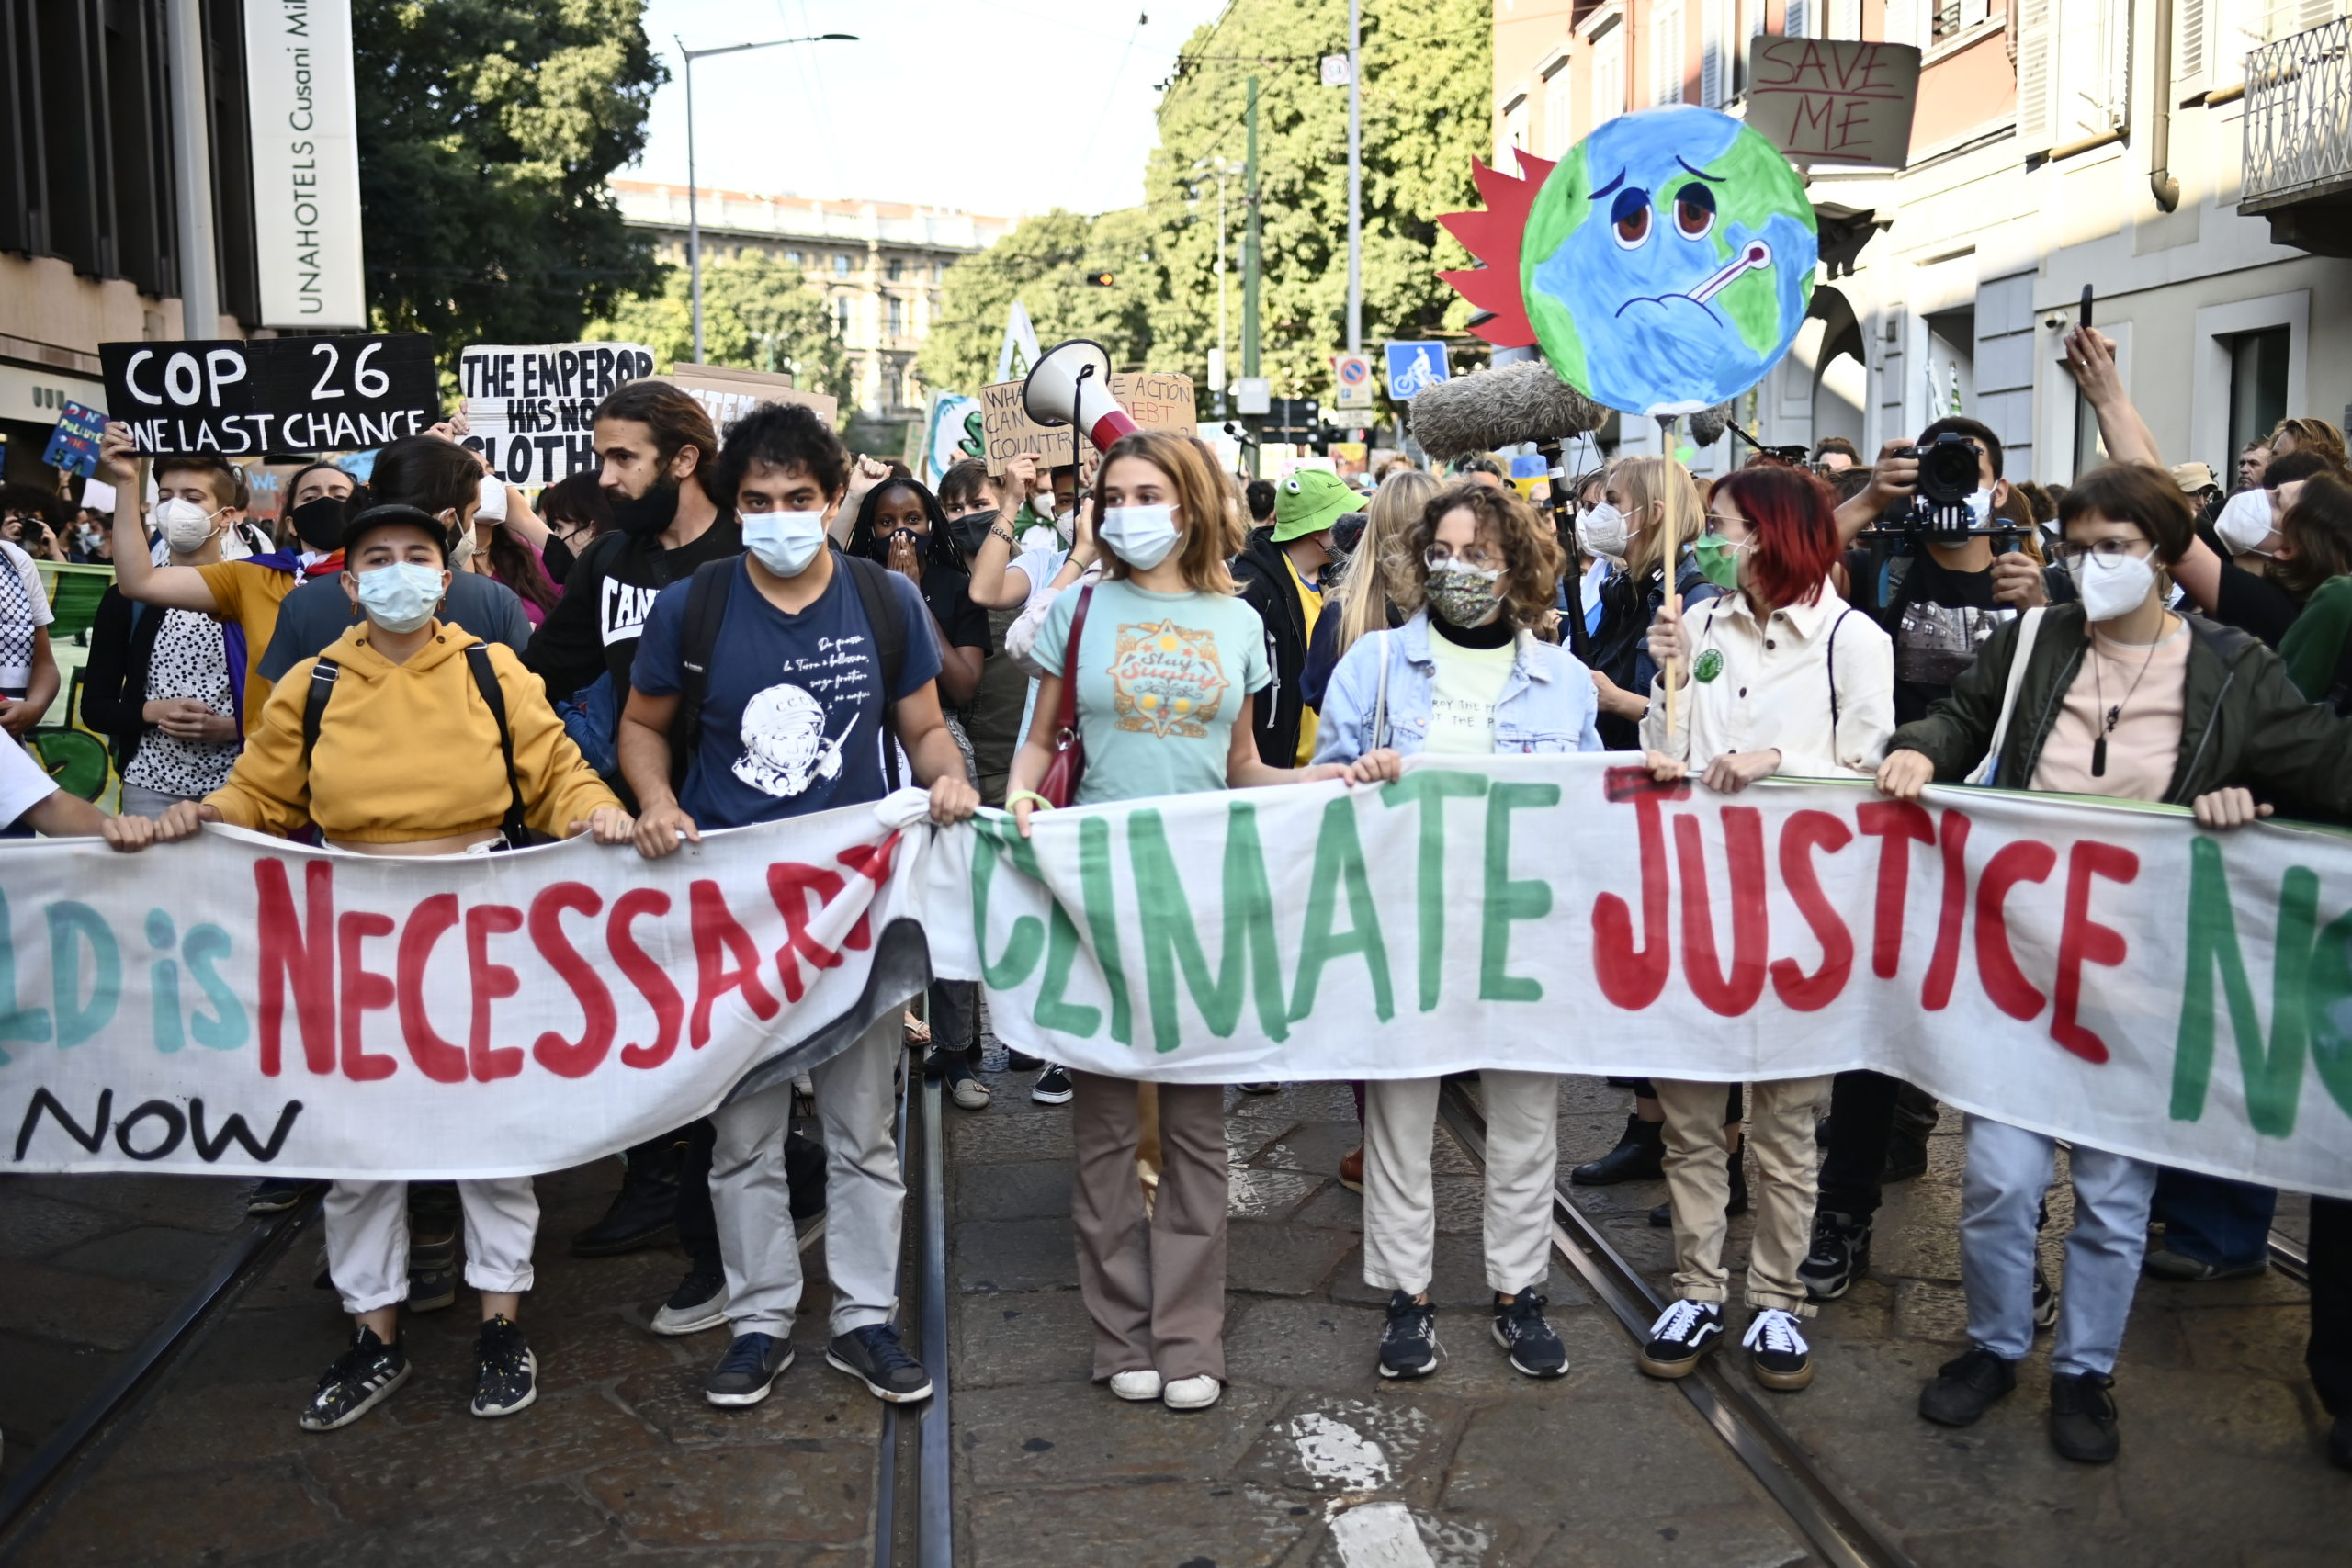 Child activists participate in a climate strike march on Oct. 1 in Milan, Italy. (Stefano Guidi/Getty Images)